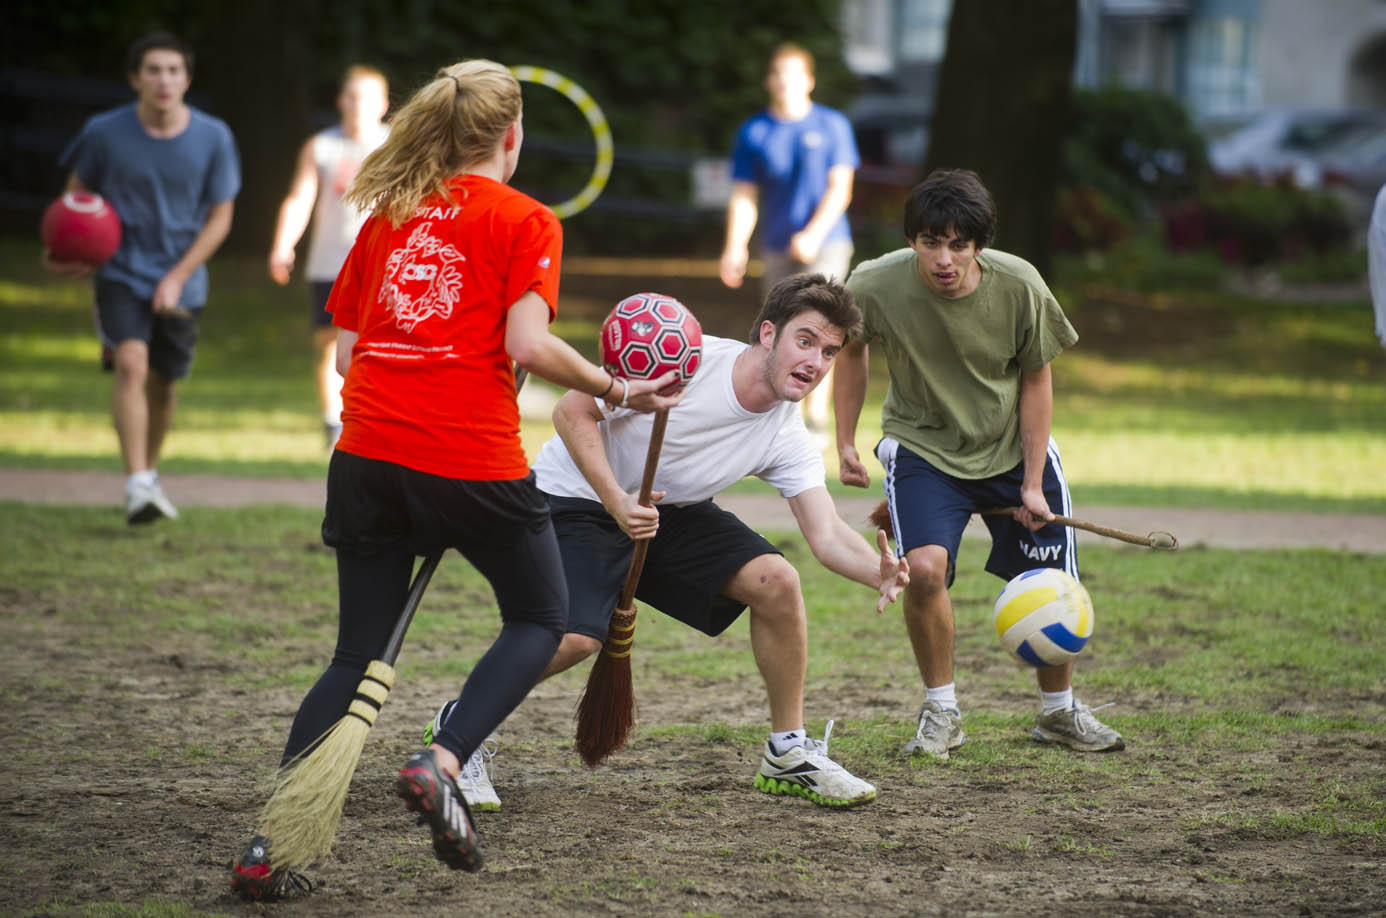 Angelino Placanino (CAS,'15) takes aim, center, while Caroline Stack (CAS,'12), left, and Bobby Heghmann (CGS,'15) right, look on during quidditch practice on BU Beach October 21, 2011. The trio are part of The Mandrakes, who are part of the BU Quidditch league. Photo by Cydney Scott for Boston University Photography